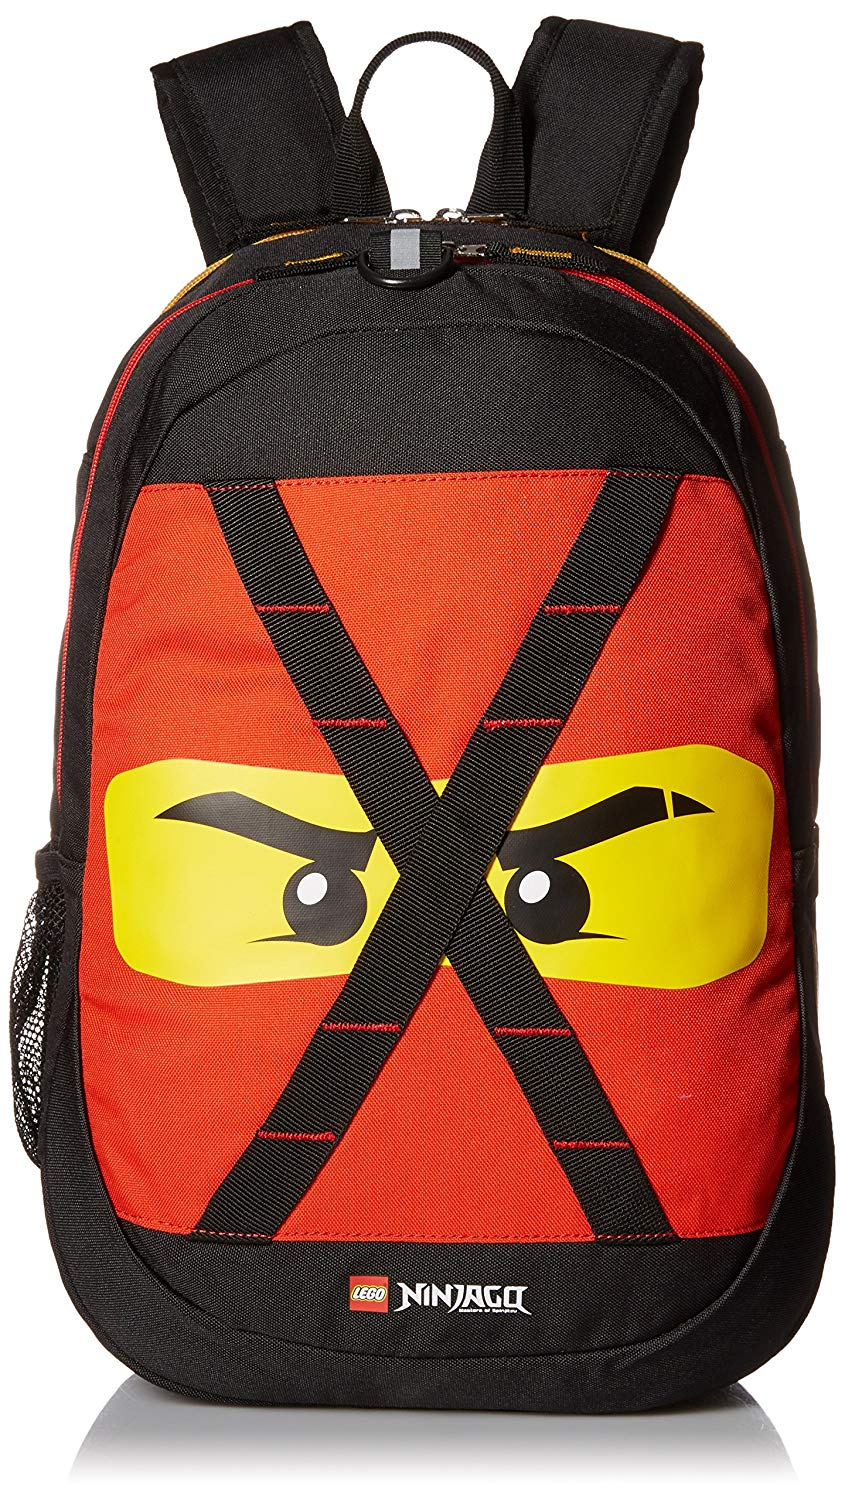 LEGO NINJAGO Future Backpack - ninja turtles gift